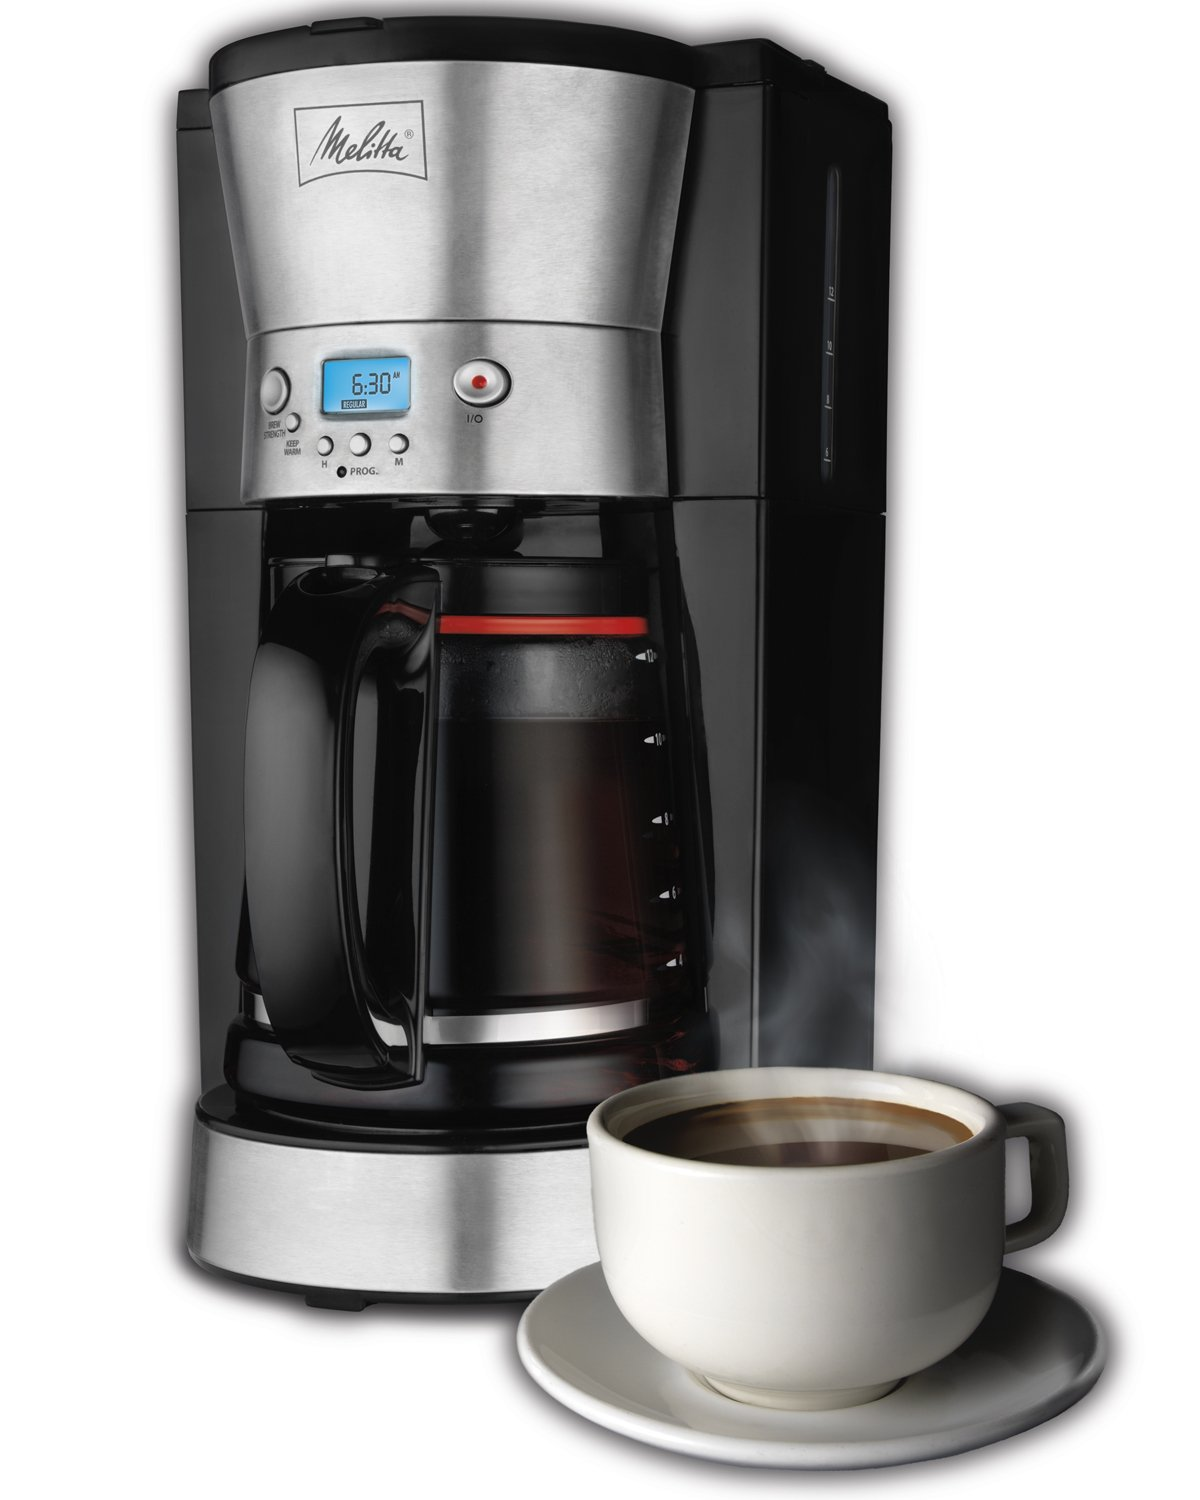 Top Rated Coffee Makers Buying Guide And Reviews